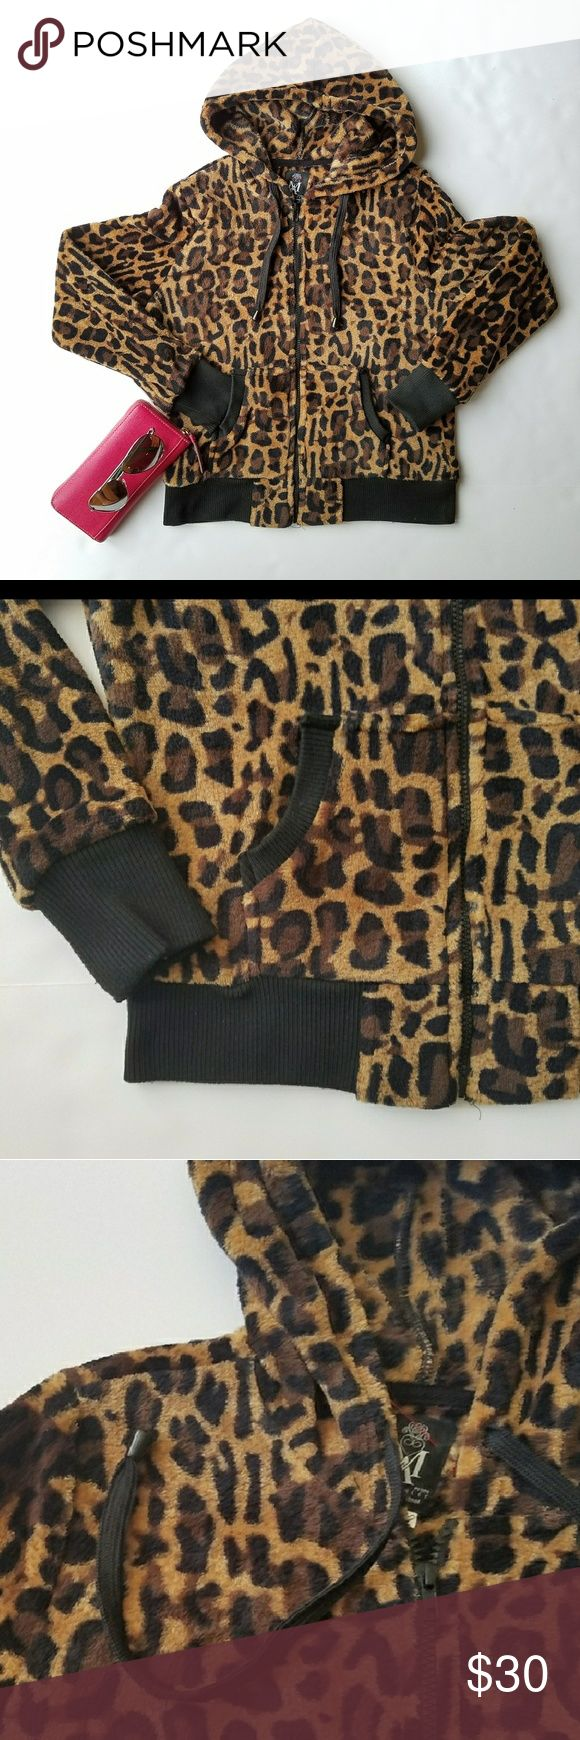 """Leopard Print Zip Front Hoodie Animal print zip front hoodie. Leopard print hoodie. Black sleeve cuff and black ribon around the 2 front pockets edges. Front black zipper. Cozy and warm. Right on trend this season. Size PM. Bust: 20"""" Length: 22"""". EUC,  Like New. 26 International Sweaters"""